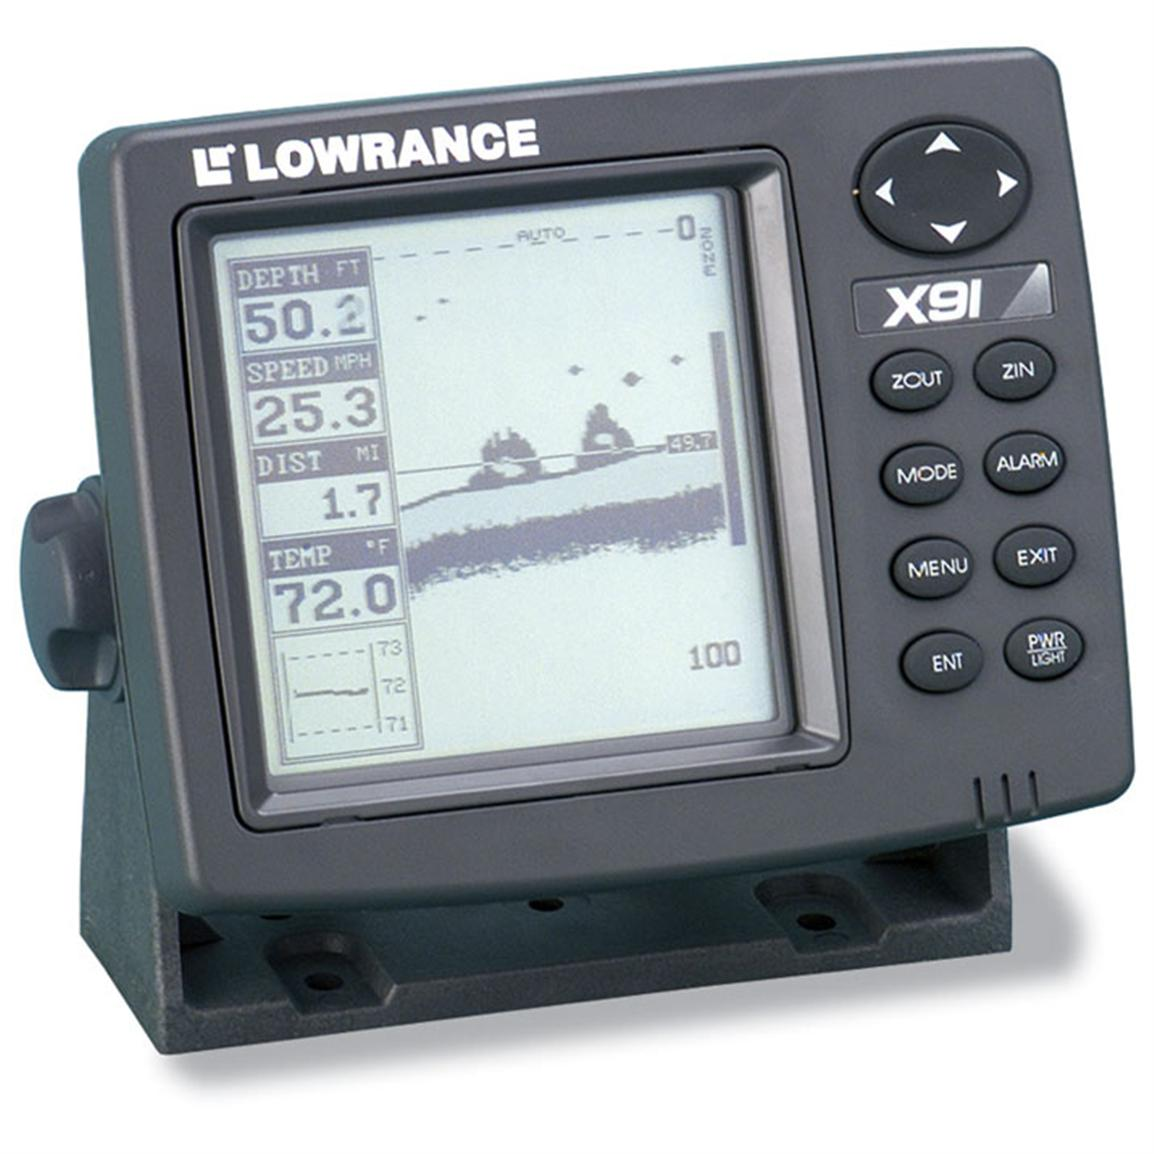 lowrance x91 fish finder 65606 at sportsman 39 s guide